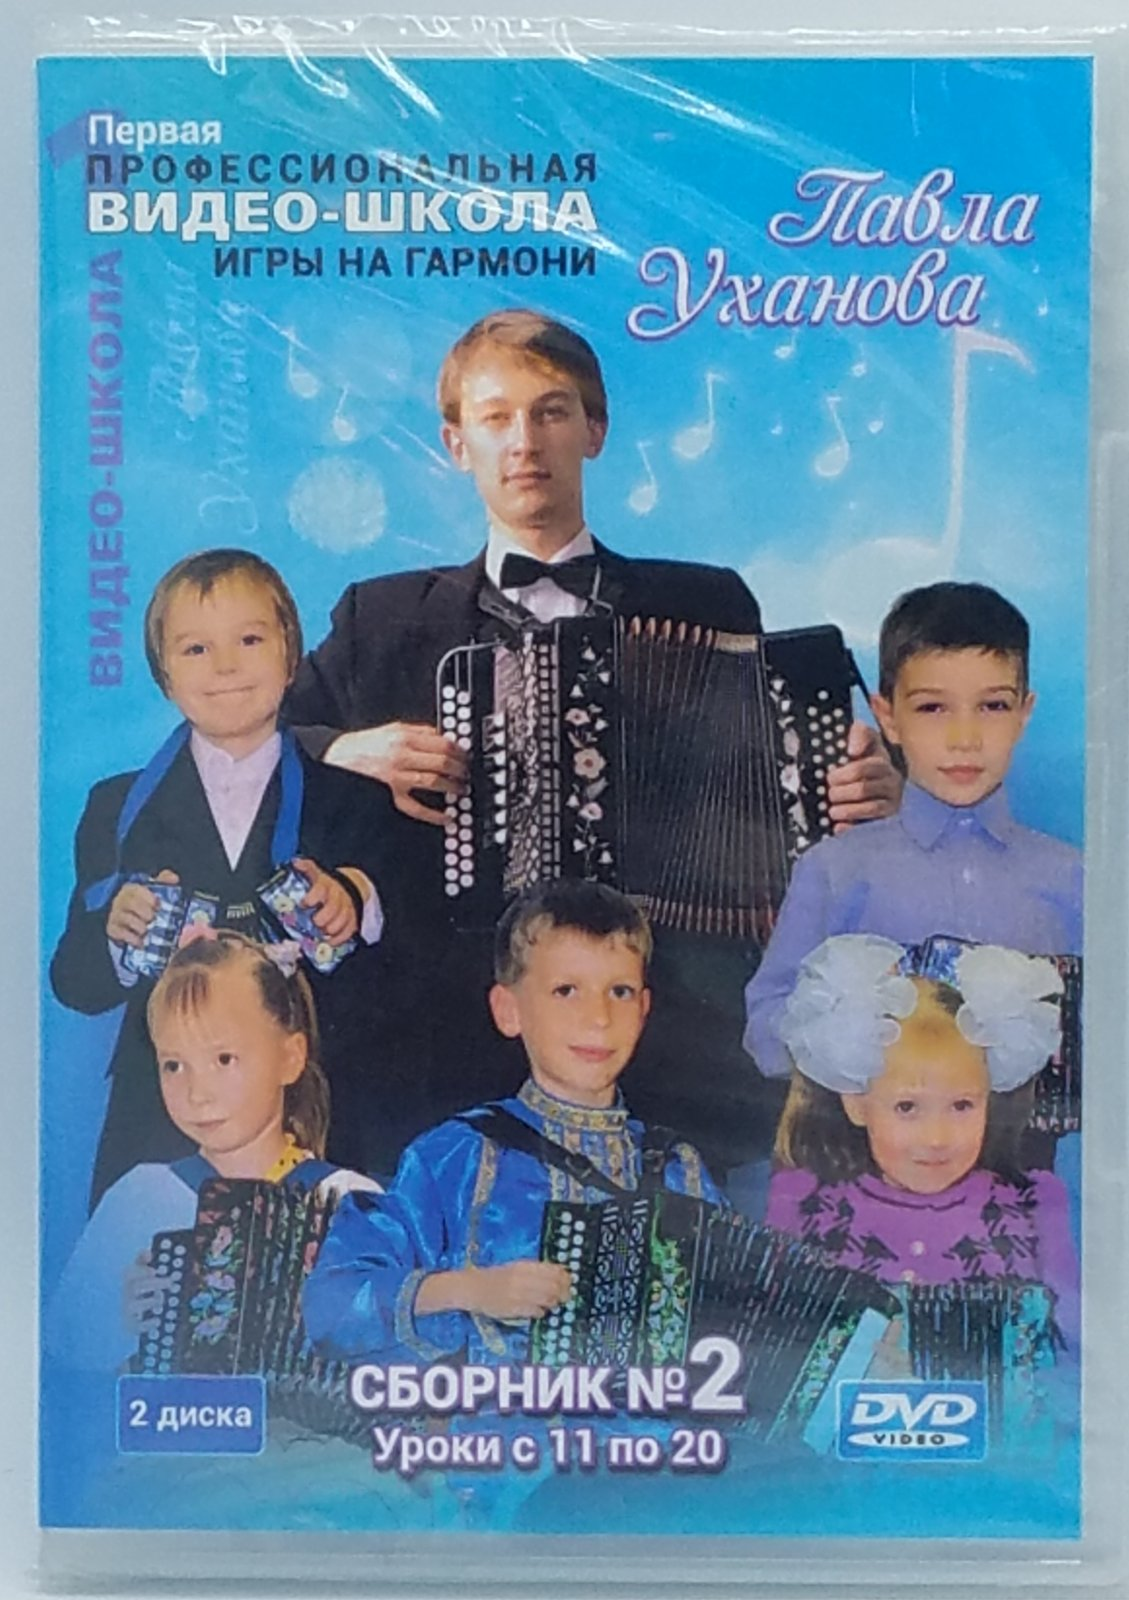 Video School for Accordion no. 2 (DVD) (Russian)